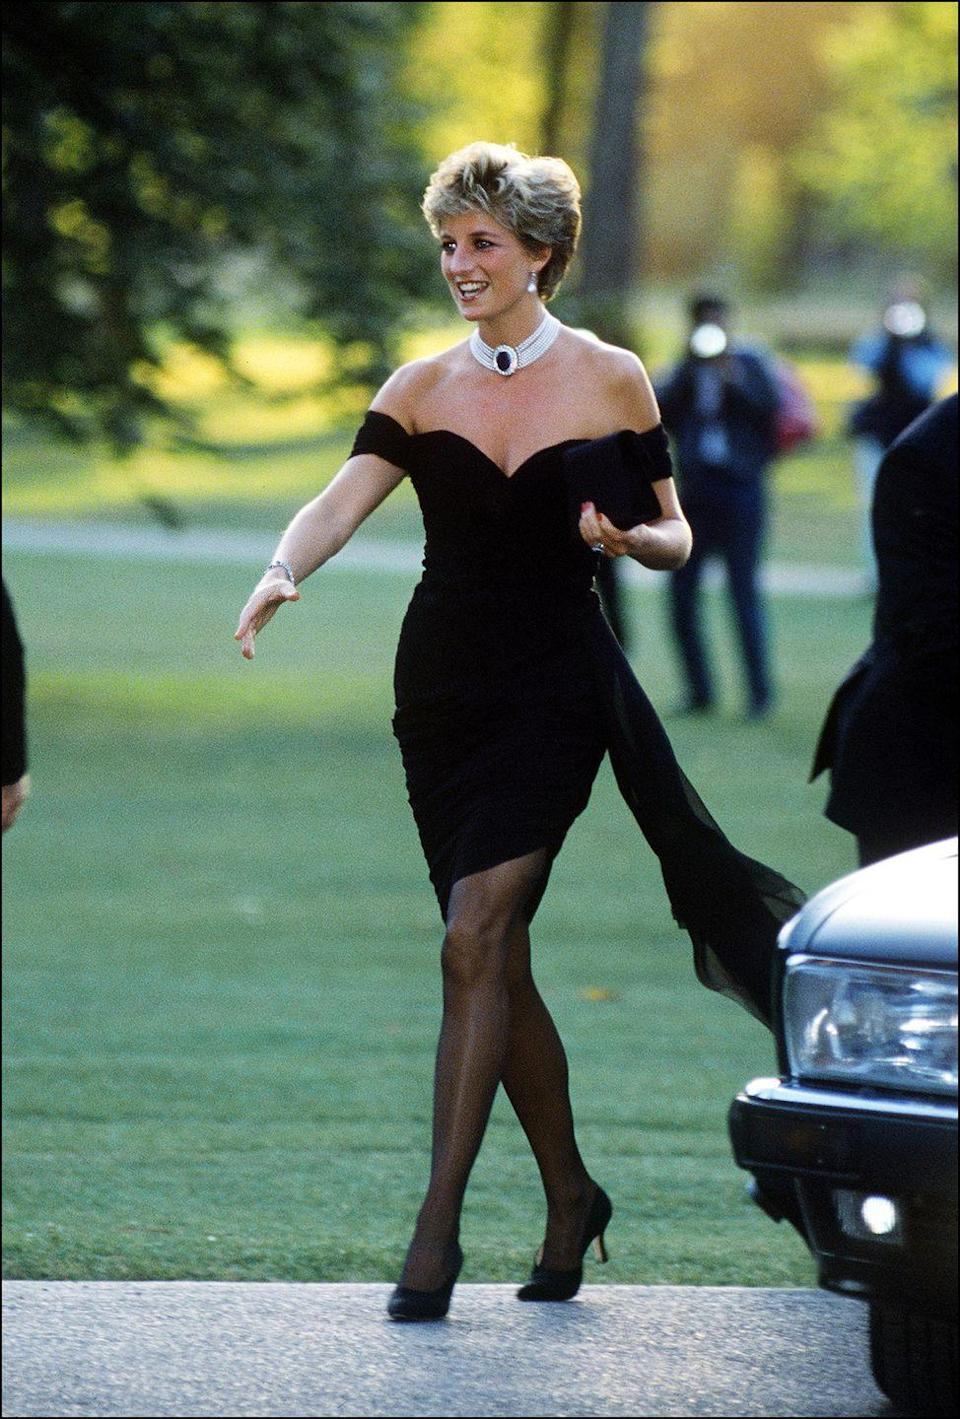 "<p>No longer ""Shy Di""! In 1994, while a documentary about Prince Charles' infidelity was airing, Princess Diana donned a clingy, ruched mini dress for a Serpentine Gallery benefit. The next day, she stole the newspaper headlines with her confident look. </p>"